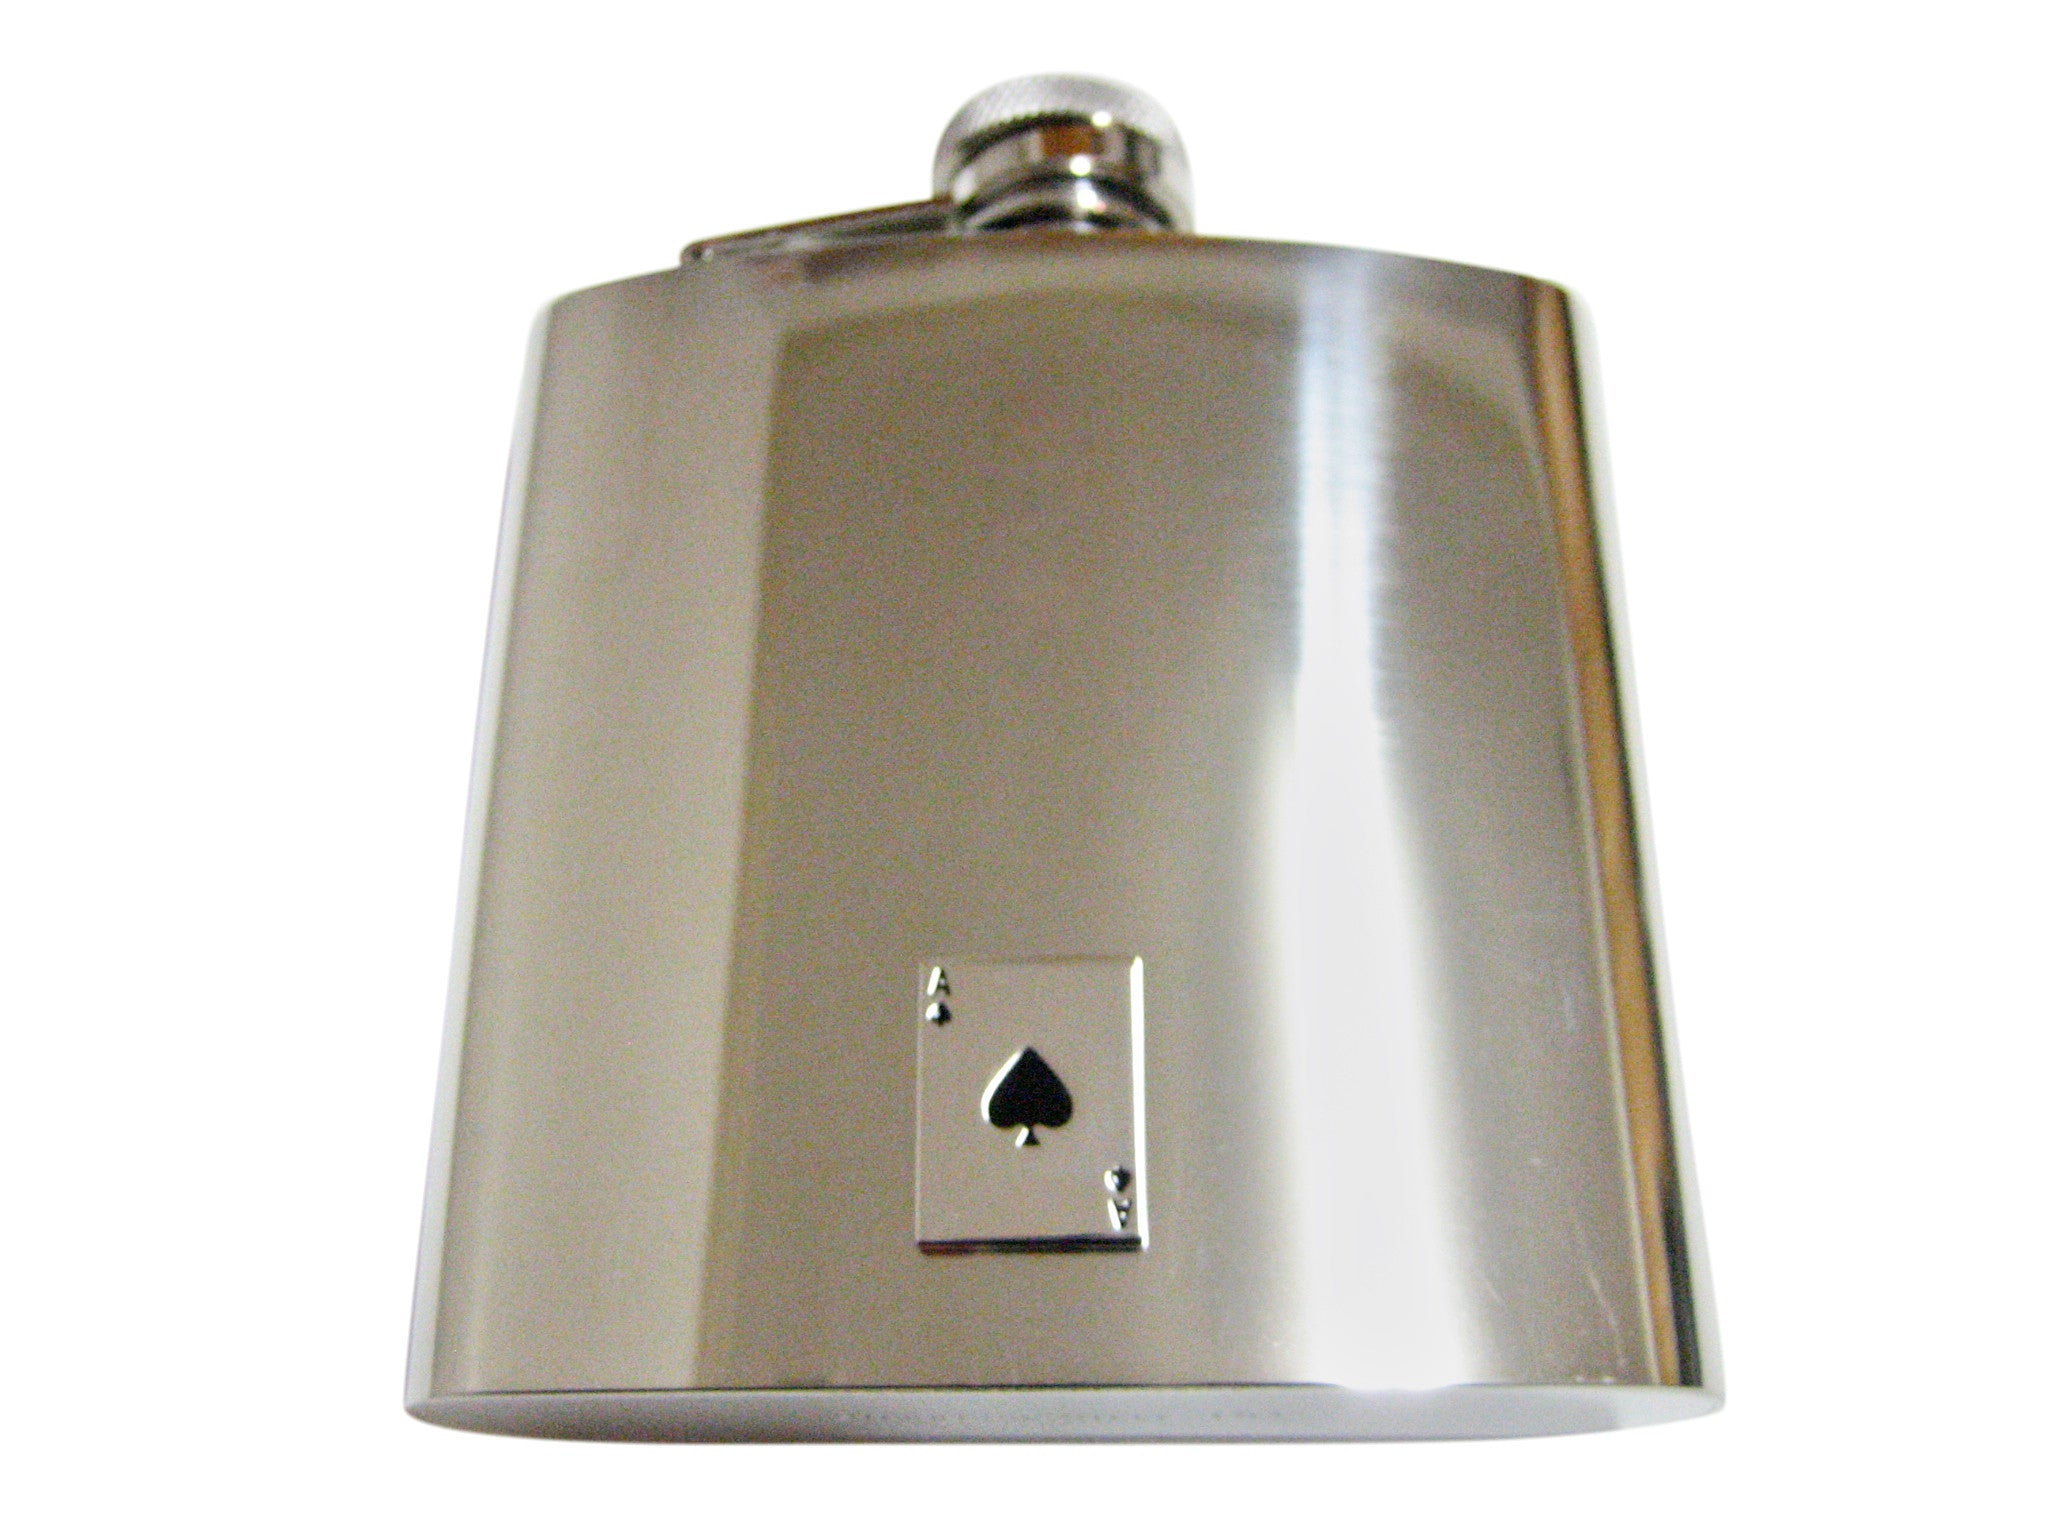 Shiny Ace of Spades 6 Oz. Stainless Steel Flask